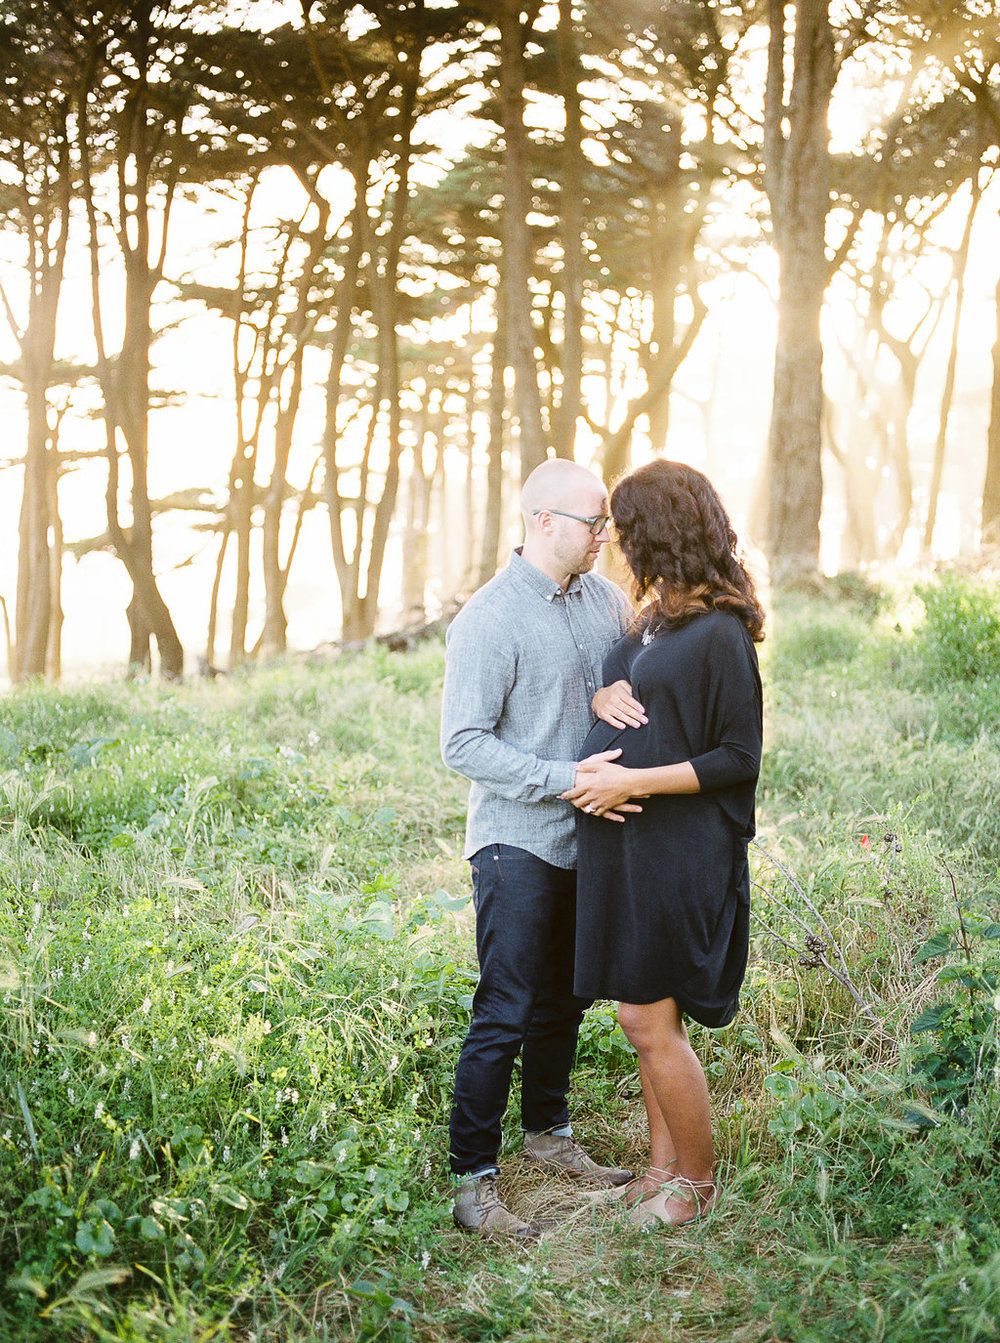 San Fransisco wedding photographer Kibogo Photographer | maternity photos in SF 29.JPG